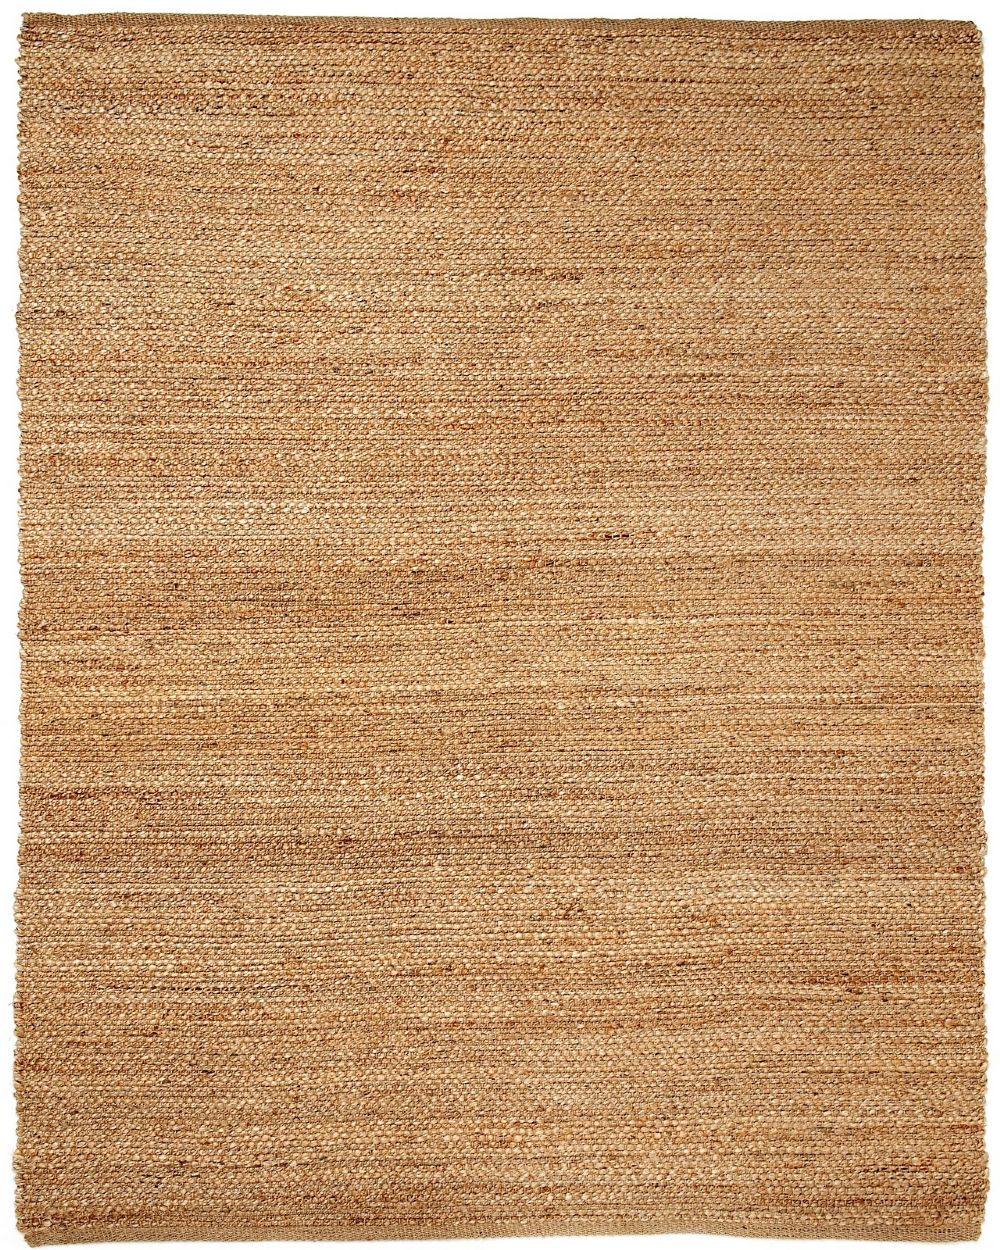 anji mountain portland natural fiber area rug collection